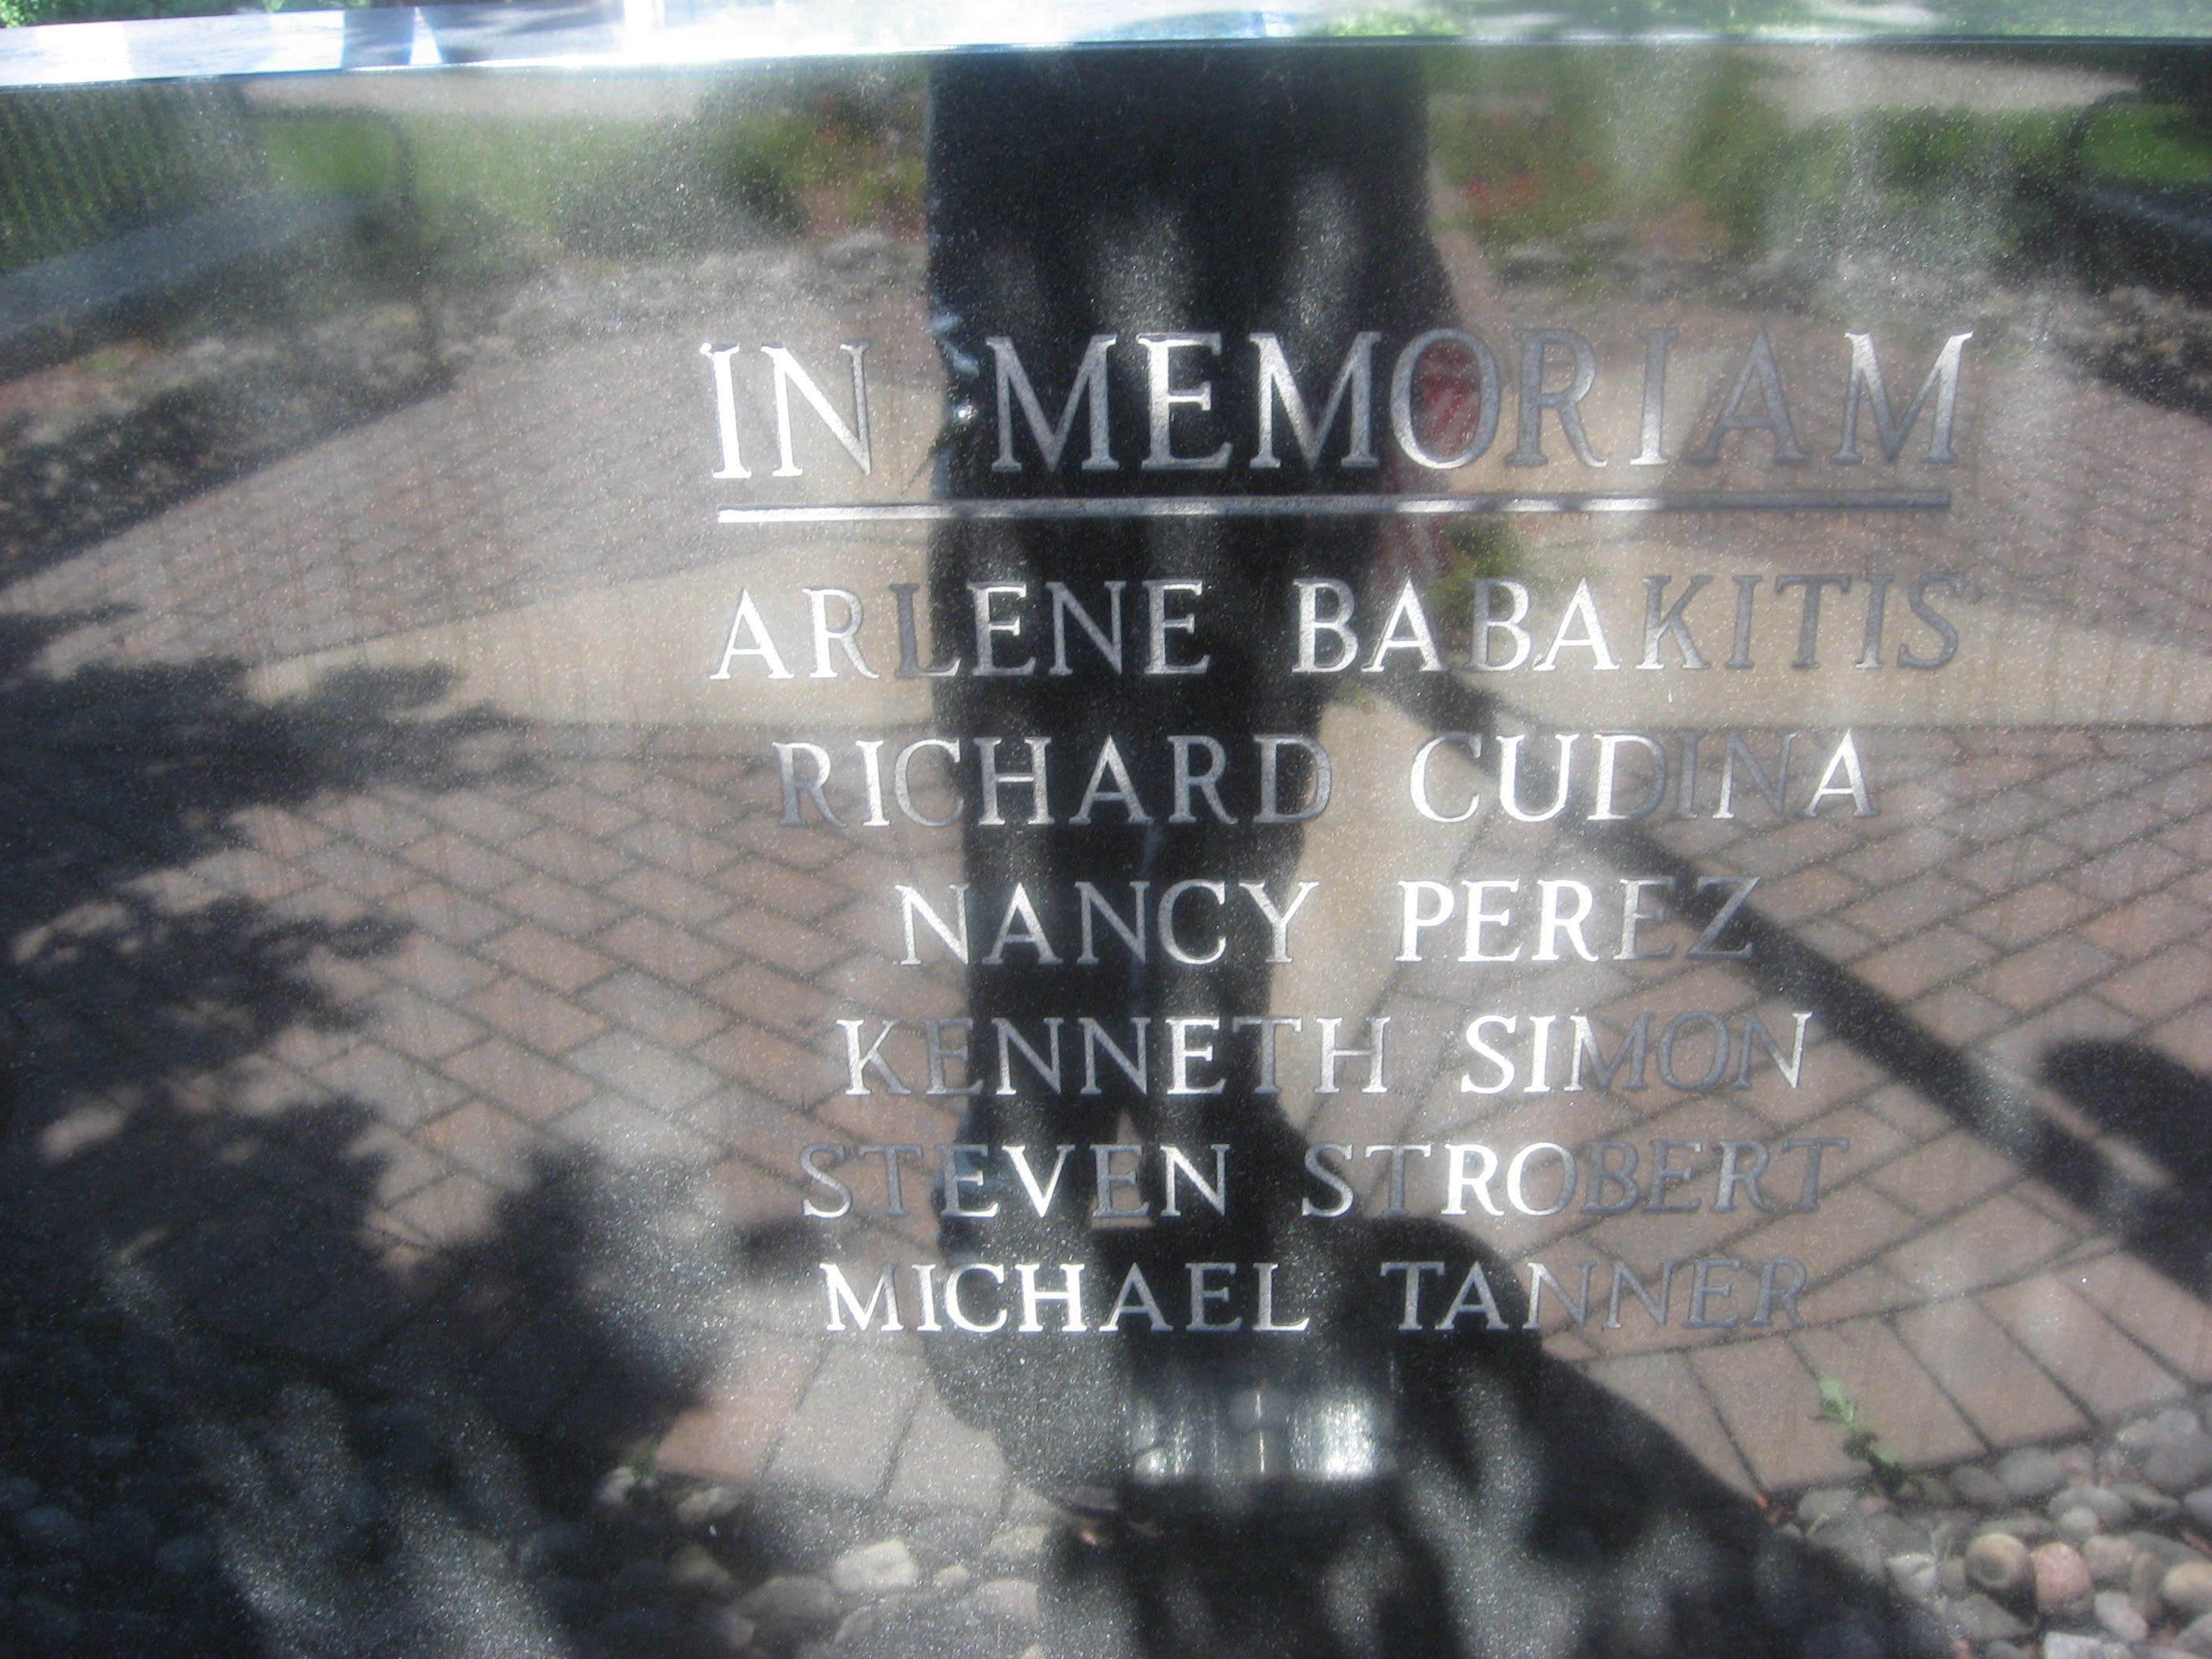 Arlene Babakitis, Richard Cudina, Nancy Perez, Kenneth Simon, Steven Strobert, and Michael Tanner, all from Secaucus, are etched in this memorial located at 1379 Paterson Plank Road, Secaucus.